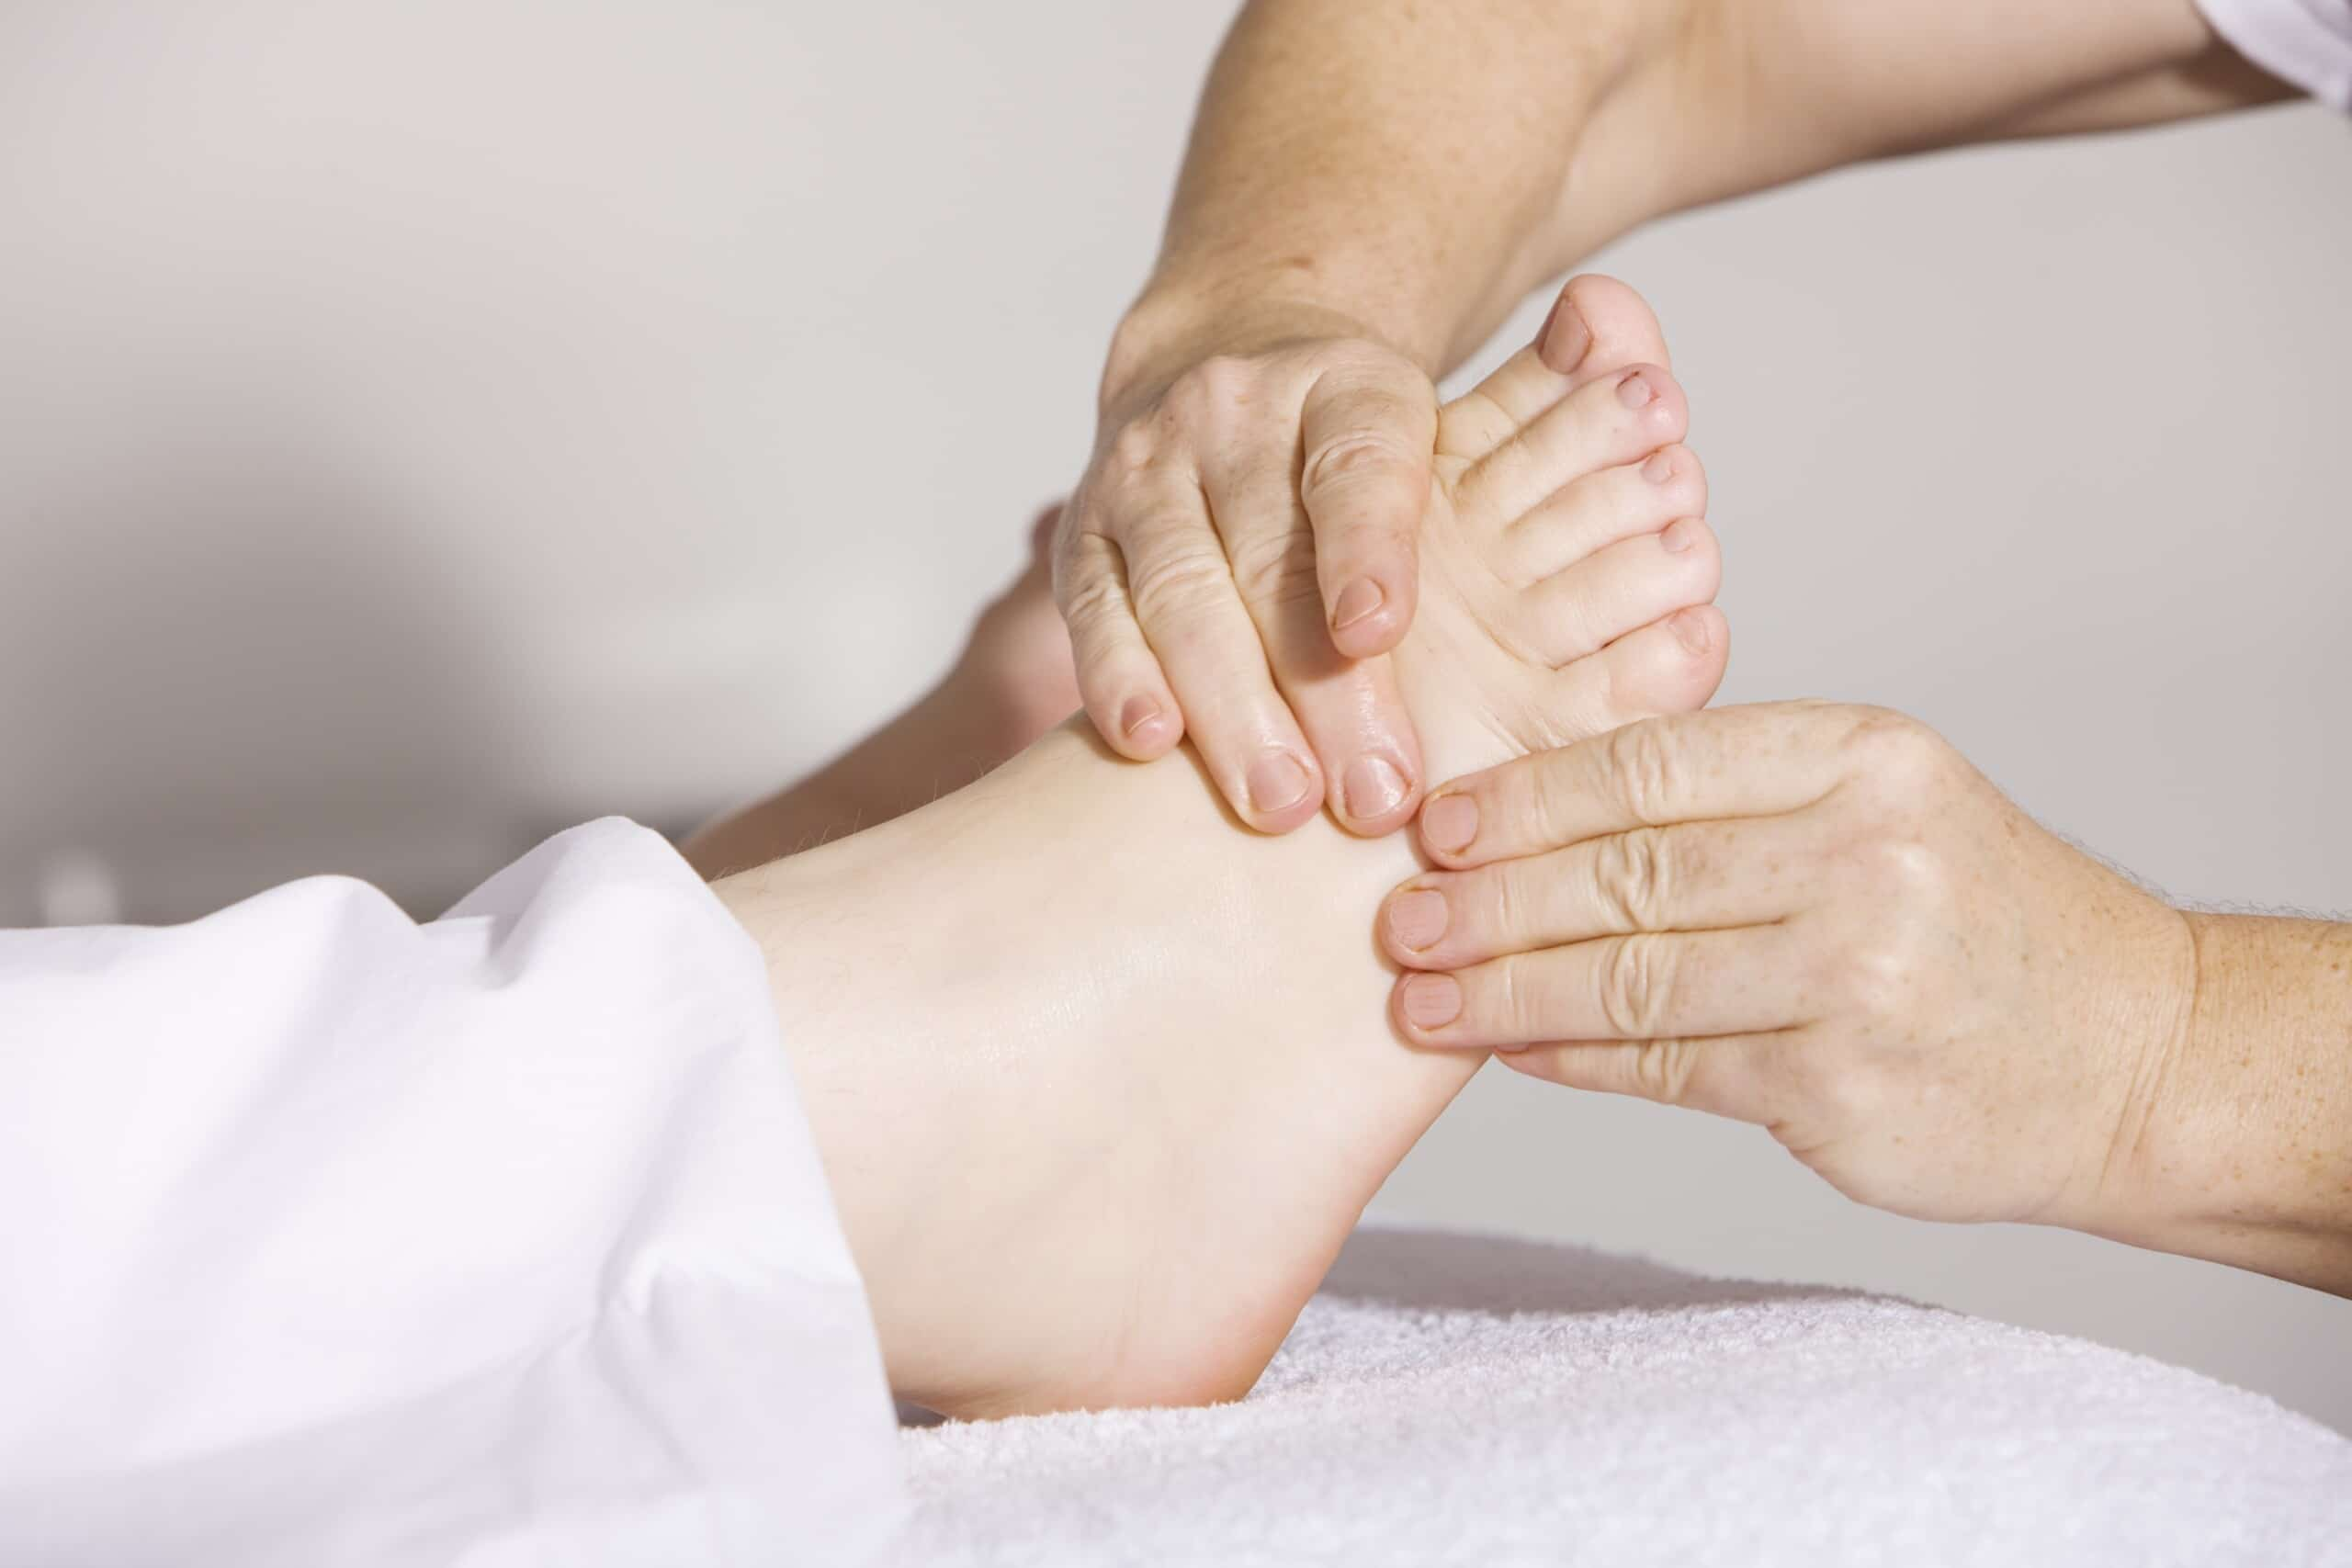 physical therapy, foot massage, massage